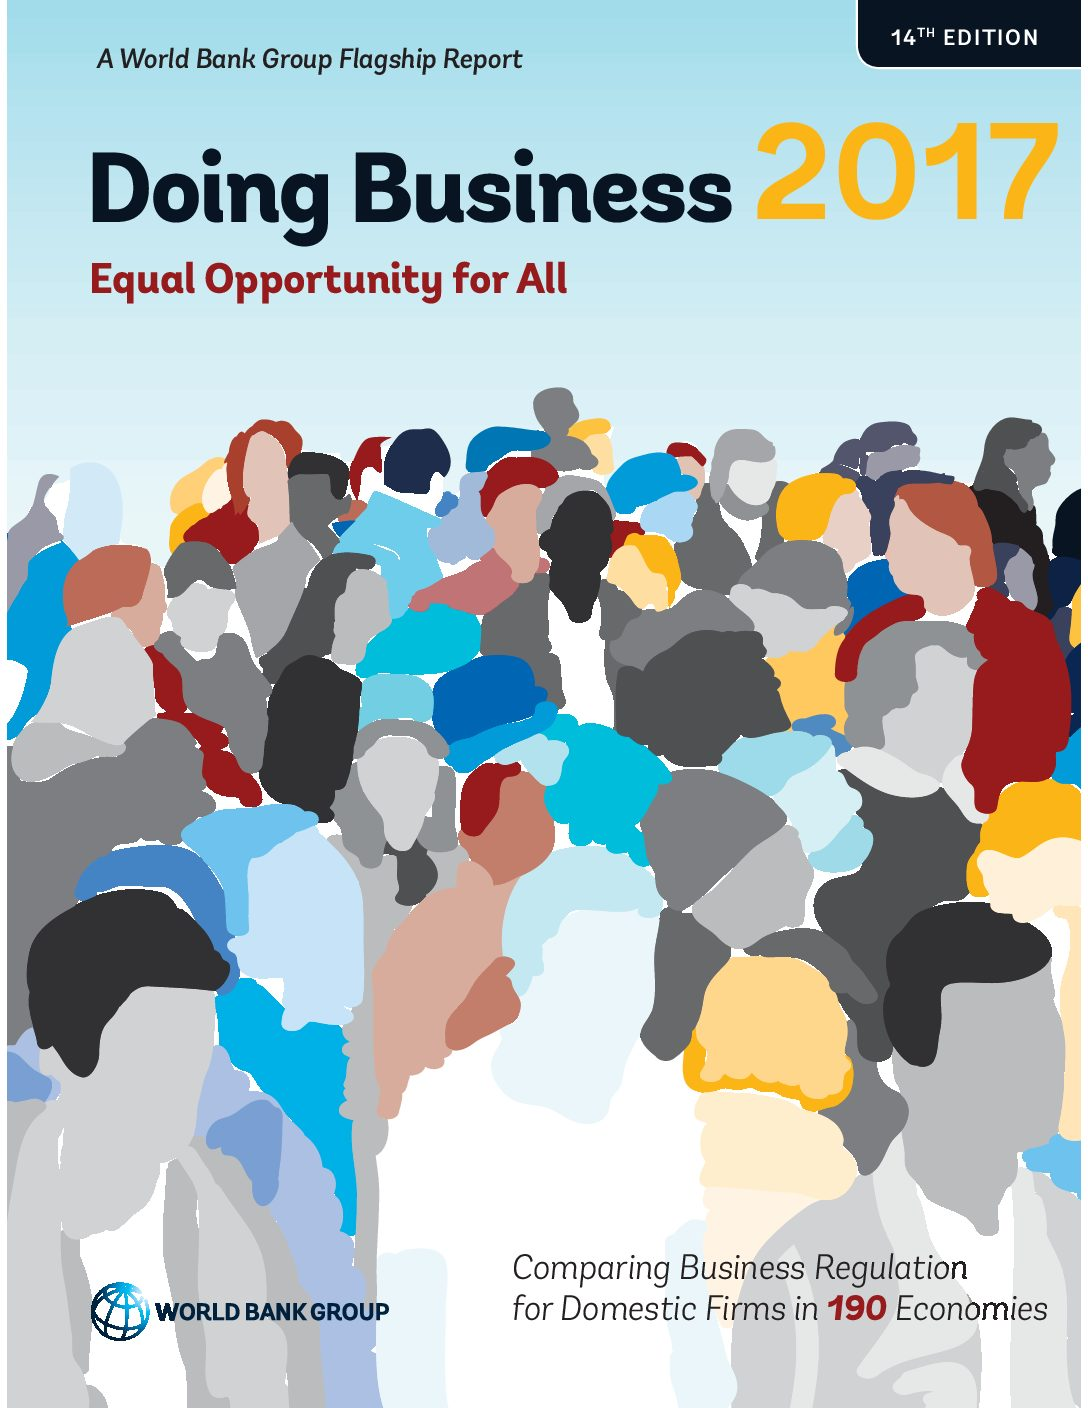 Ease of Doing Business Report 2017